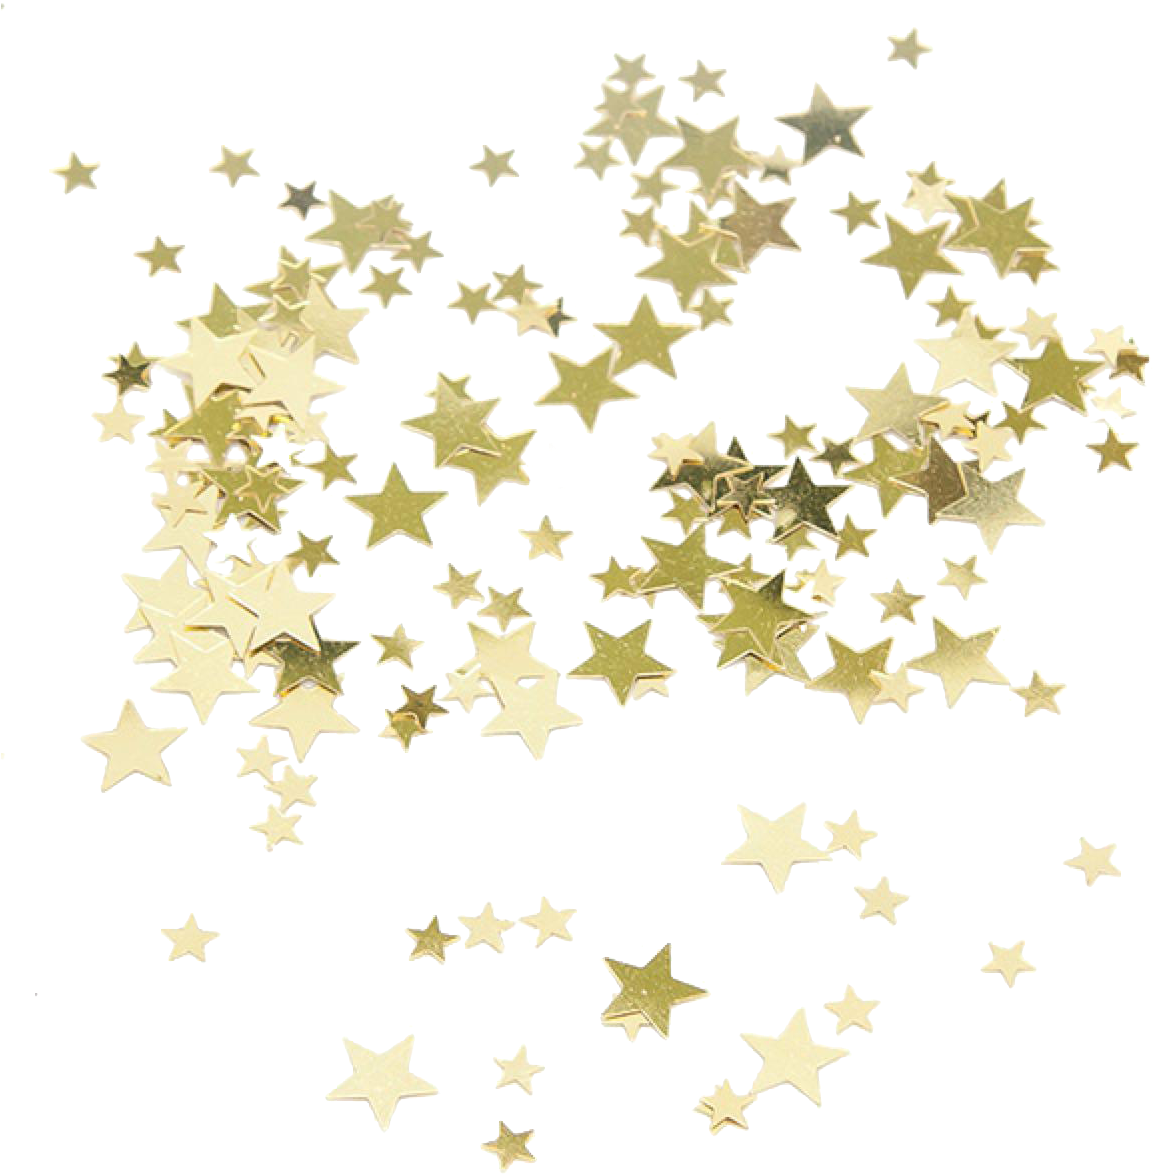 Gold Clip Art Transprent Png Free - Gold Star Confetti Png (1200x1200), Png Download